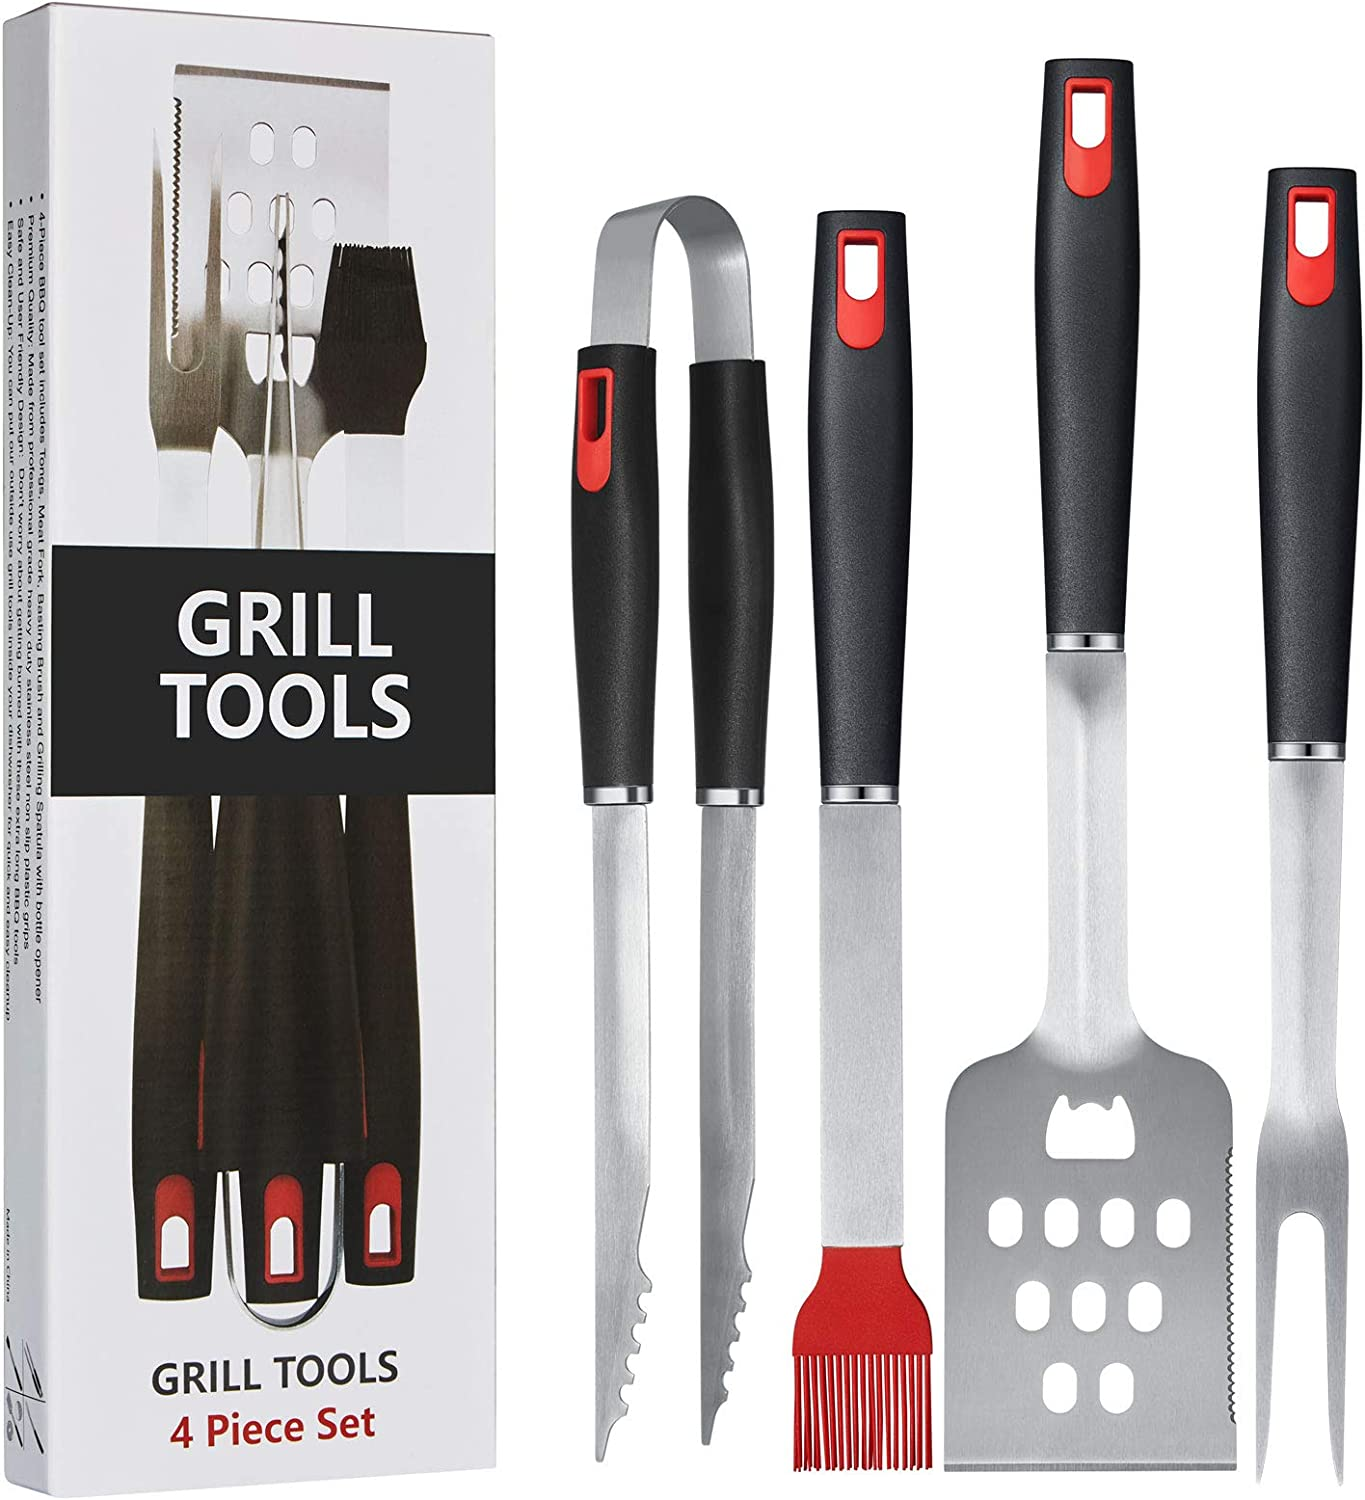 Homissor BBQ Grilling Tools Set, Stainless Steel Spatula, Fork, Basting Brush&Tongs, Gift Box Package.Best for Barbecue & Grill.18 Inch Utensils Turner Accessories : Garden & Outdoor